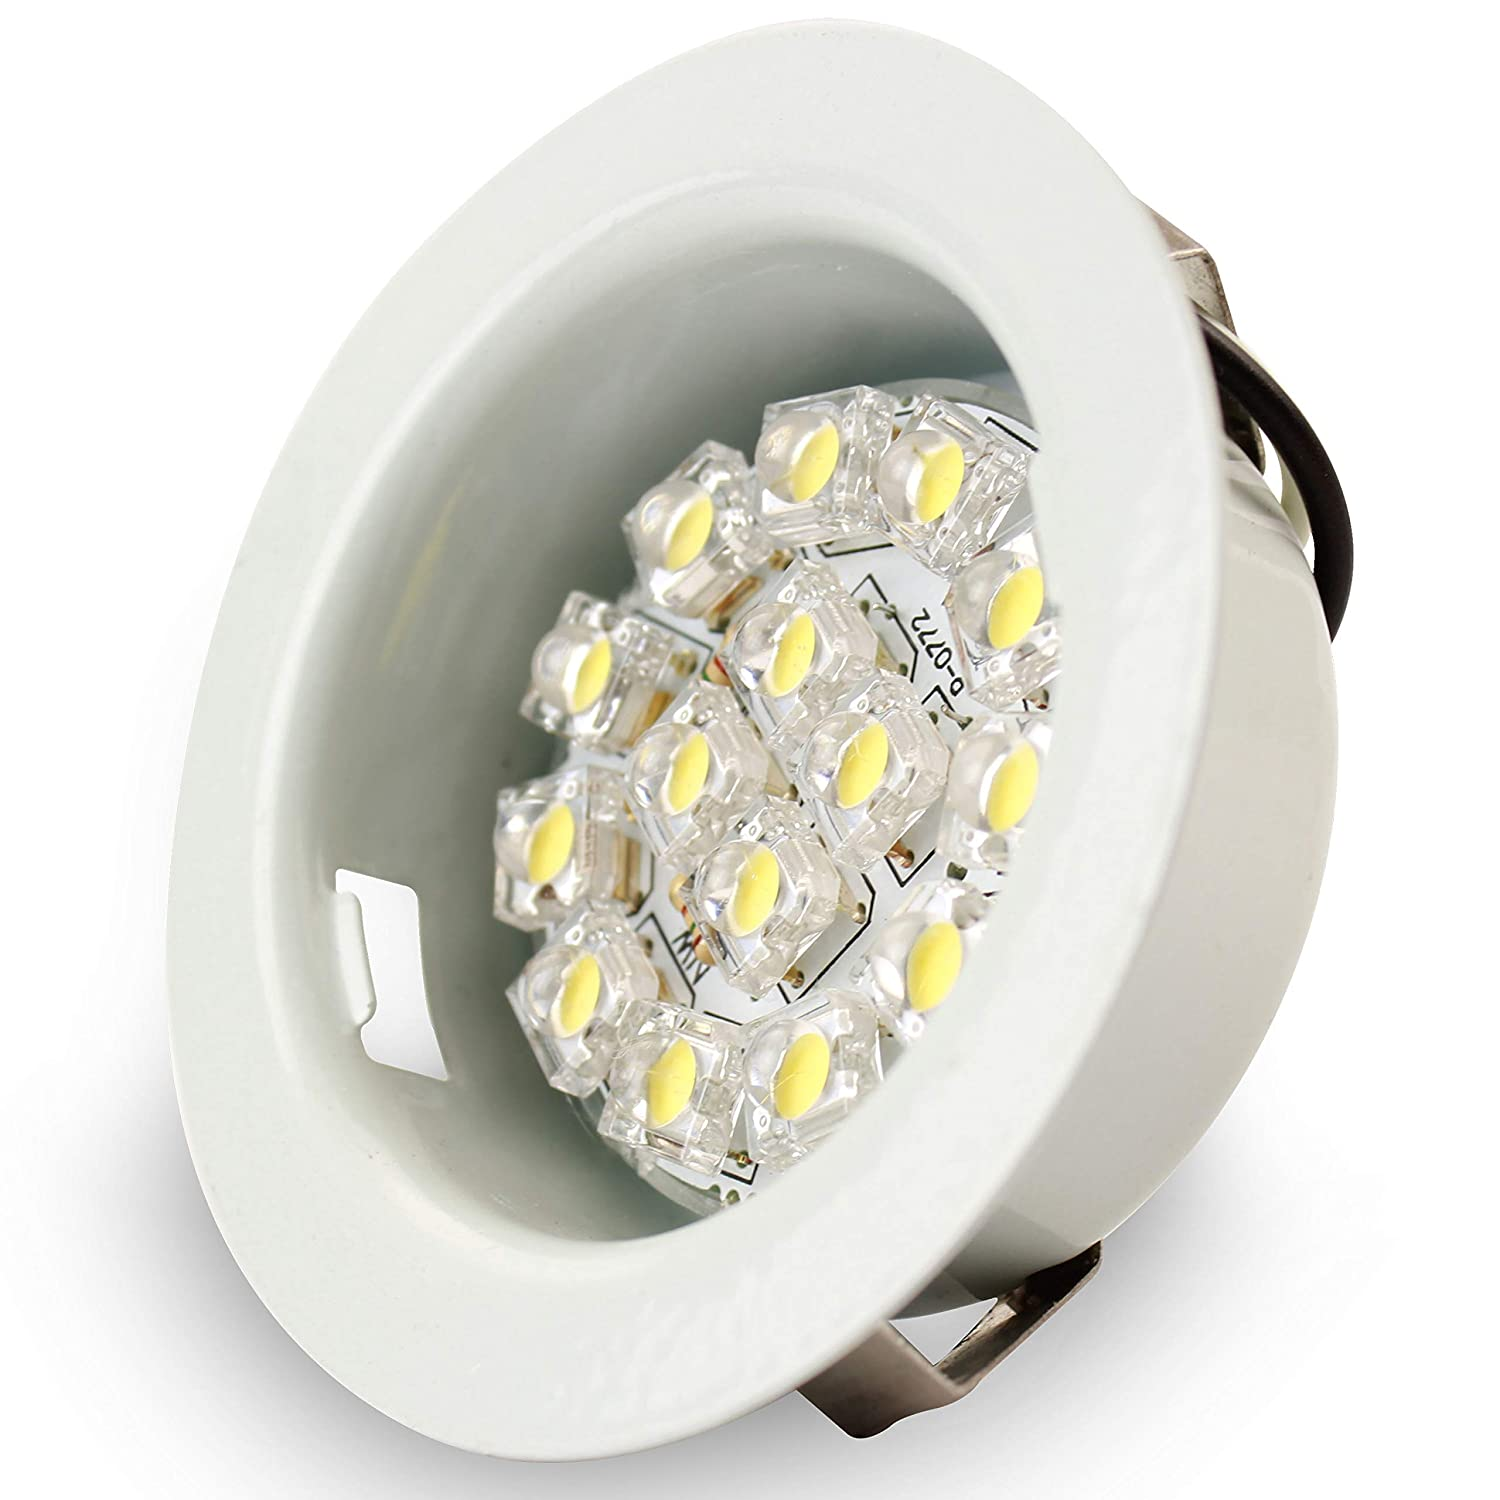 6-Pack Leisure LED 3 Inch 6 Pack LED RV Puck Light Full Aluminum and Glass Recessed Mount Down Light 12V 3W 210 Lumens